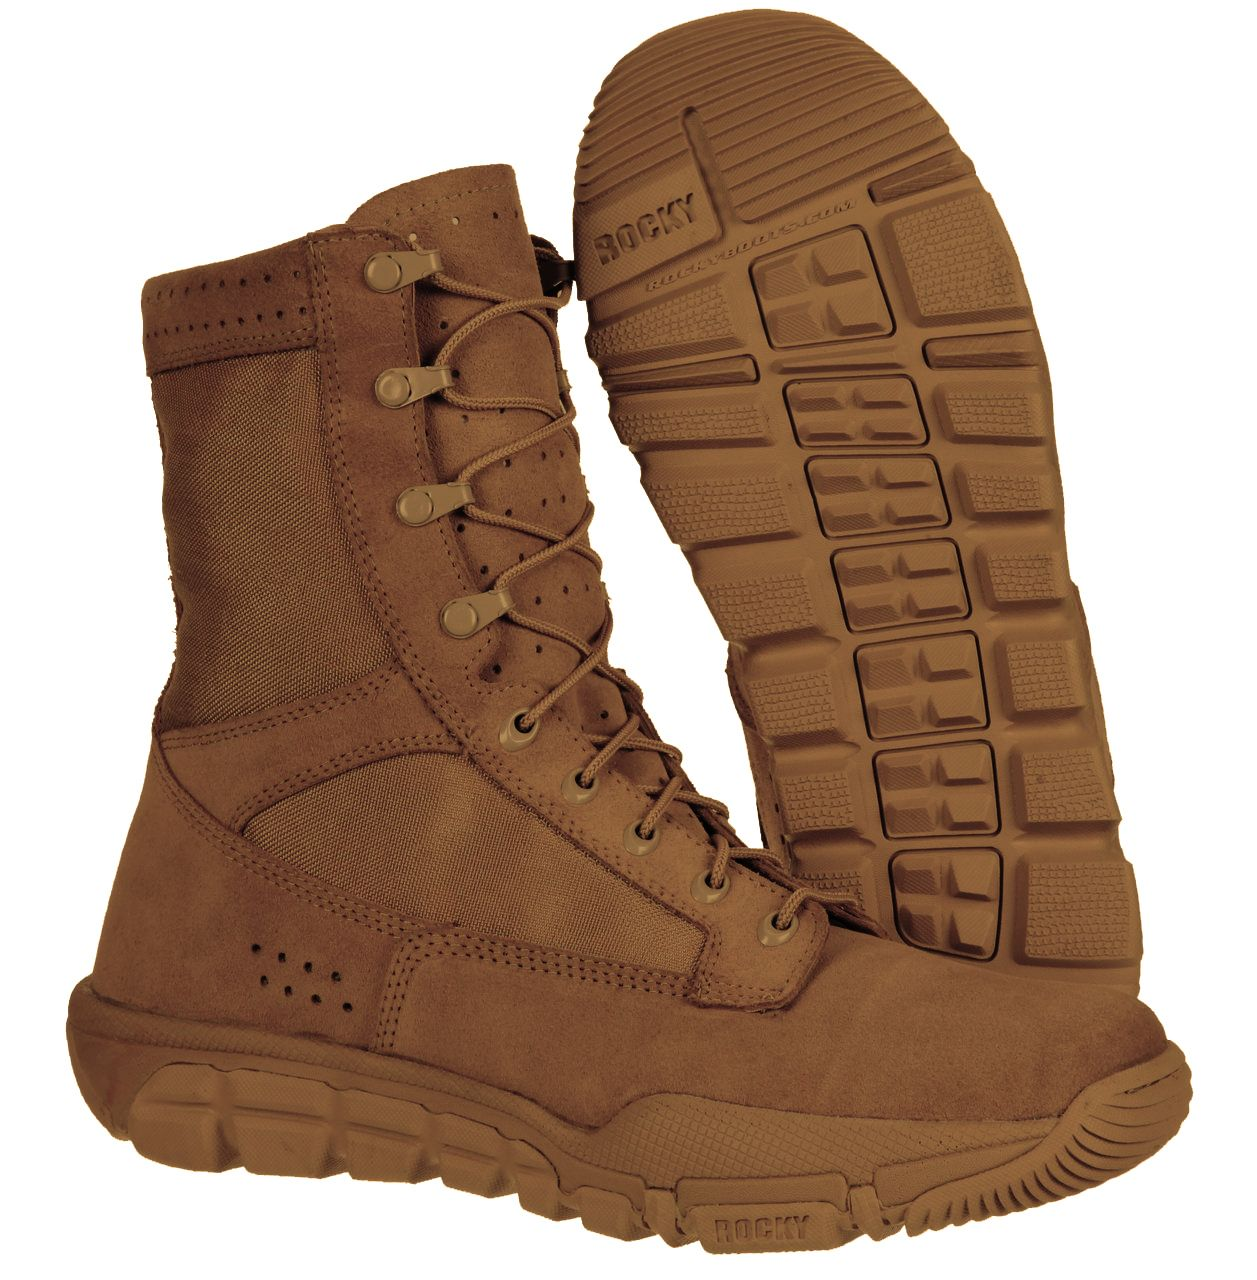 Rocky C6 RLW AR670-1 Compliant Boots (Coyote) RKC042 | Patriots ...